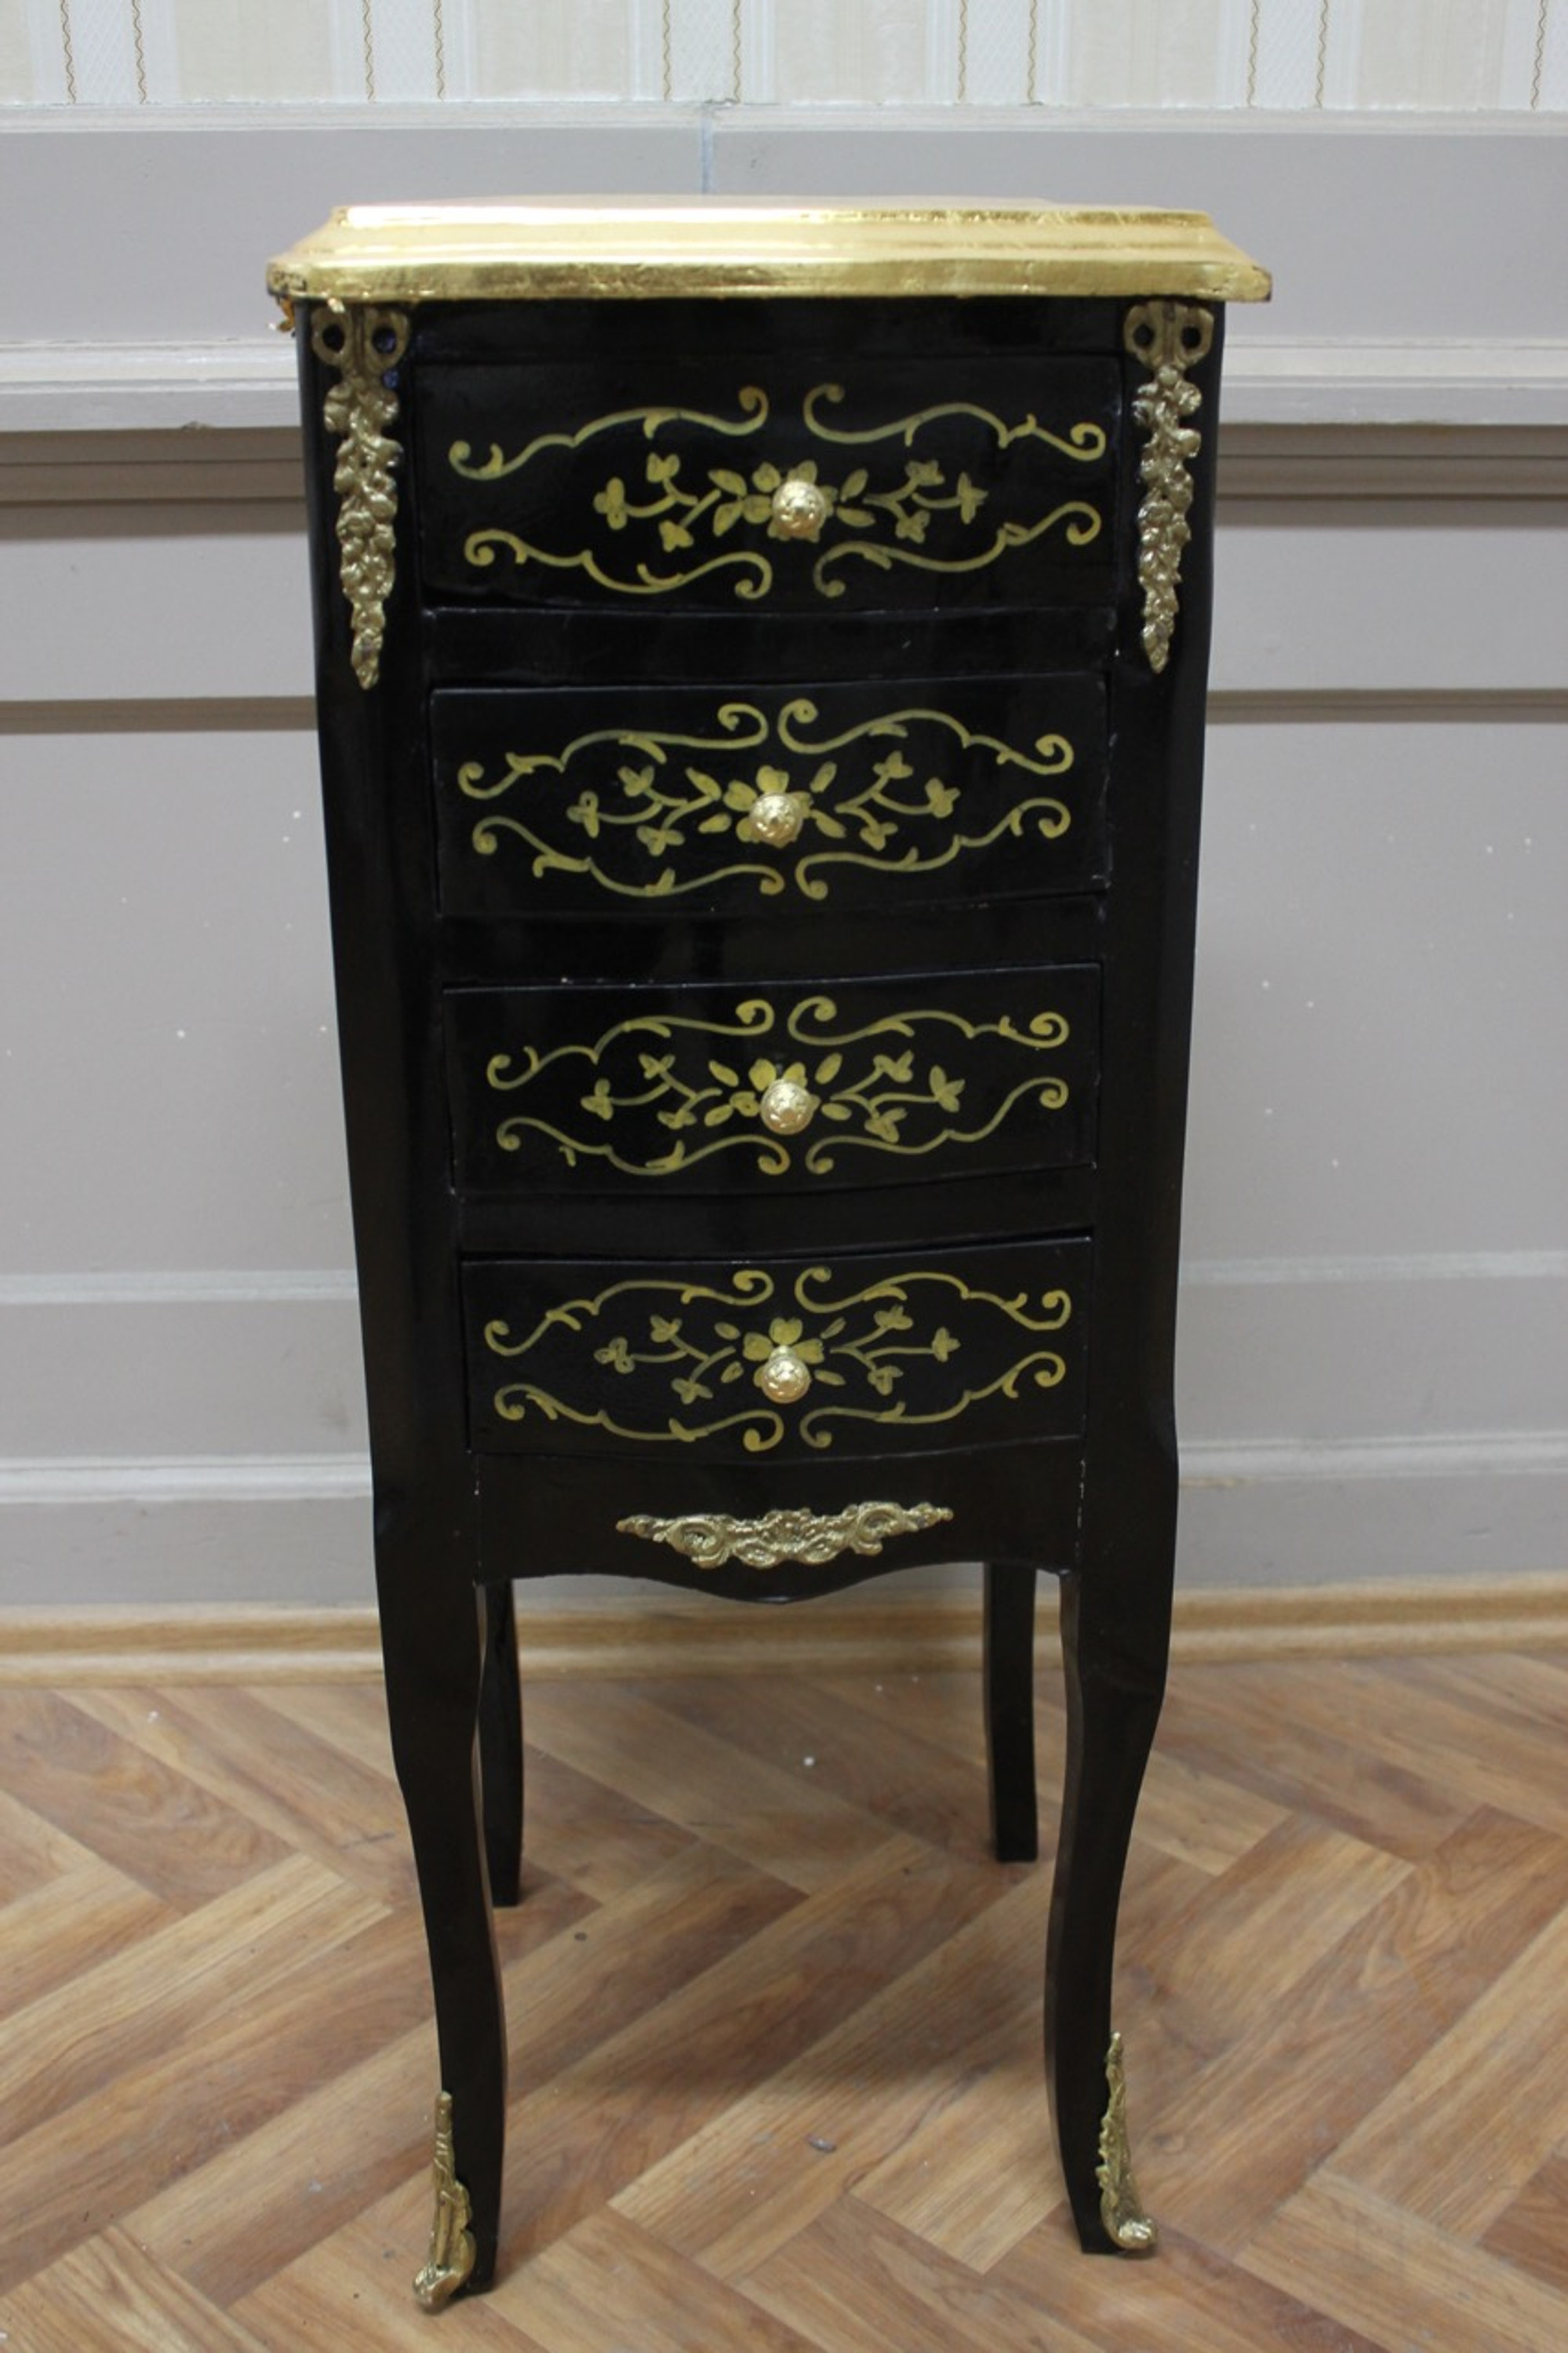 barock kommode schrank schwarz louisxv antik stil aakm0111 louisxv online shop f r antike m bel. Black Bedroom Furniture Sets. Home Design Ideas